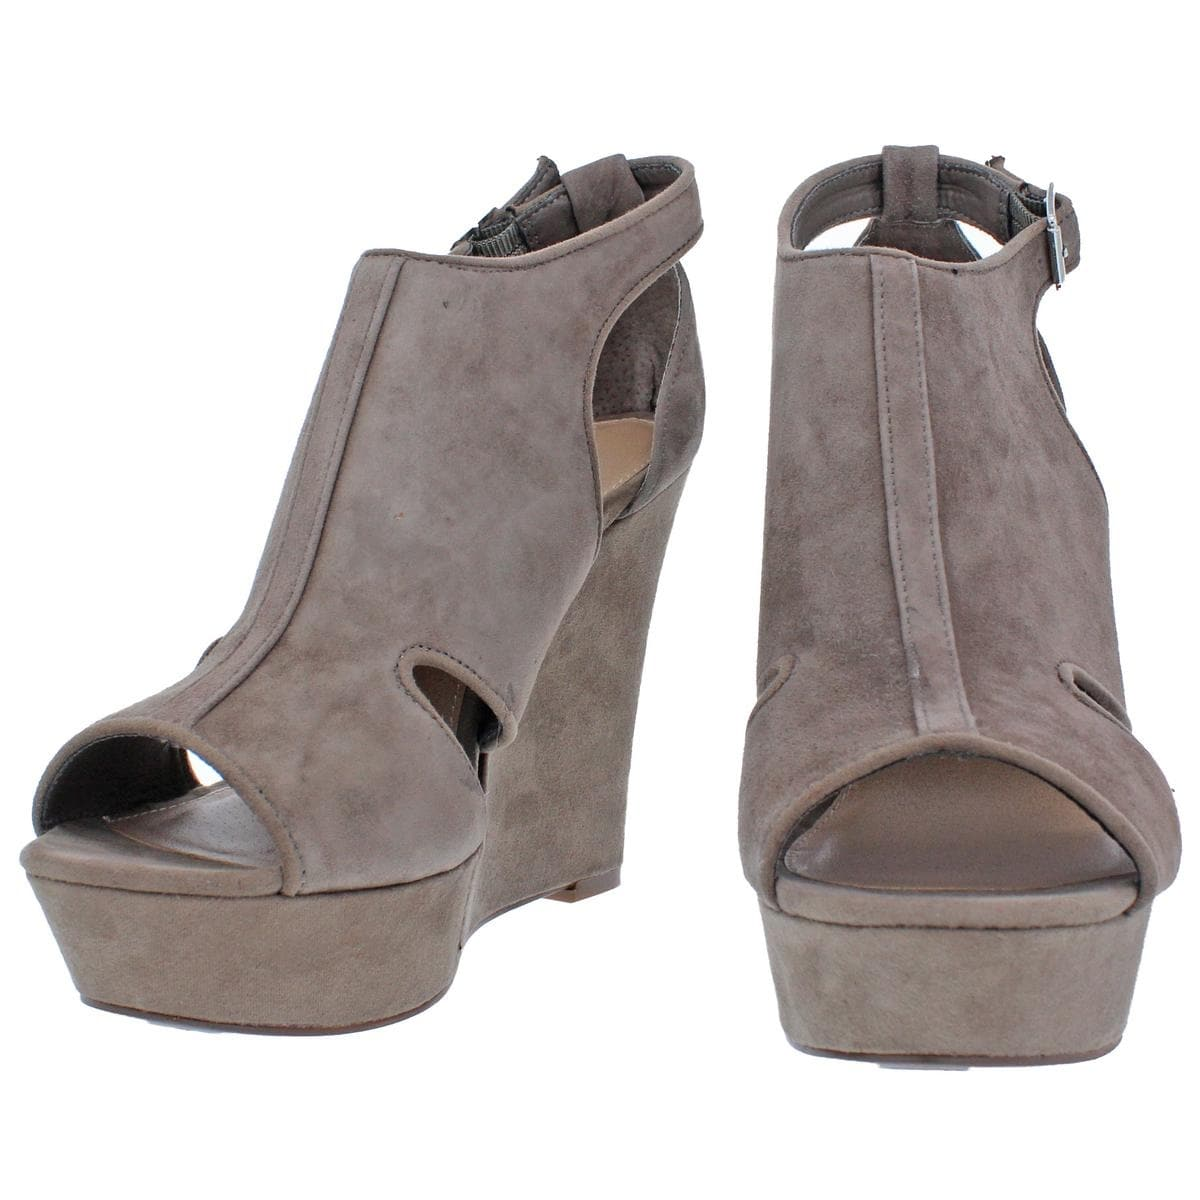 d707ebd0ab57 Shop Steve Madden Womens Natalie Wedge Sandals Open Toe Cut-Out - 9.5 medium  (b